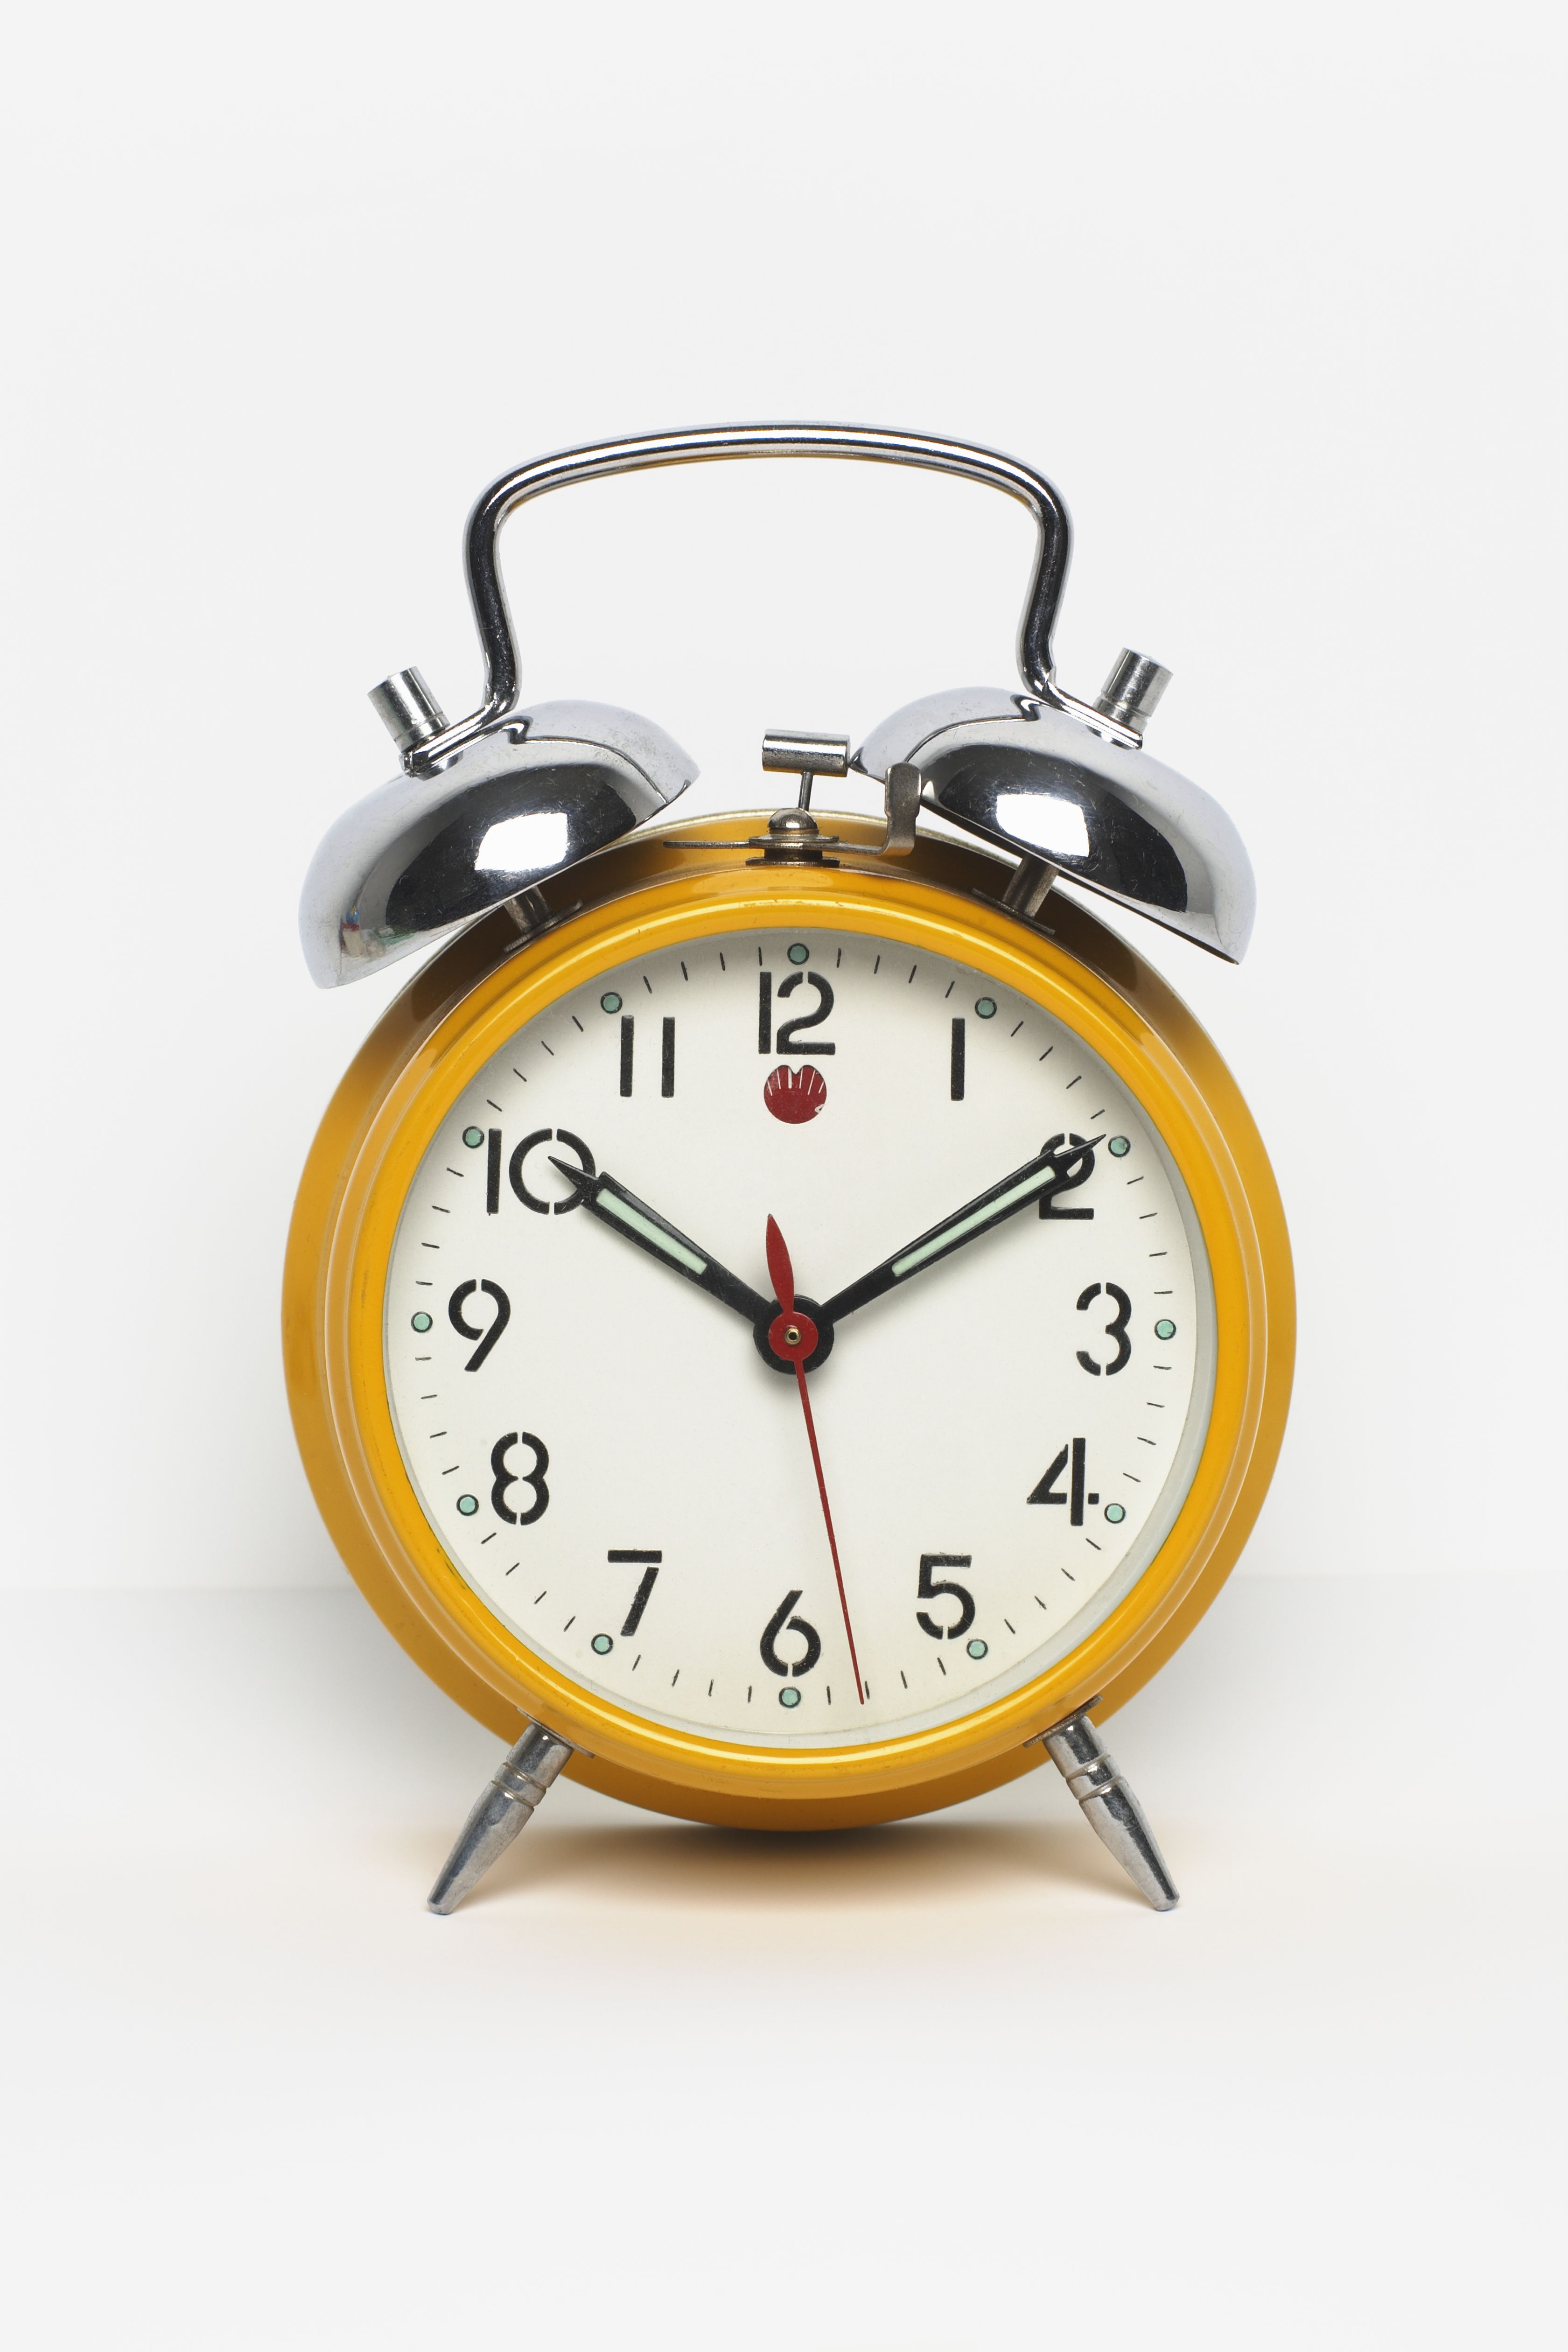 "<p>""The best way to start getting to bed earlier is to start getting up earlier every day of the week. Set your alarm for something reasonable—don't plan to shift from getting up at 8:30 a.m. to getting up at 5:00 a.m. all at once. Try setting your alarm 30 minutes earlier for a week before moving it earlier again. <strong>No snoozing allowed.</strong> Once your body adjusts to waking earlier, you will naturally become <span class=""highlight"">sleep</span>y earlier at night."" </p><p><br></p><p>Maintaining this sleep schedule despite the ebbs and flows of your weekend plans (AKA drinking) might seem like a big ask, but the National Sleep Foundation <a href=""https://sleepfoundation.org/sleep-tools-tips/healthy-sleep-tips"" target=""_blank"">recommends</a> that you stick to it to keep your body clock on track. </p>"